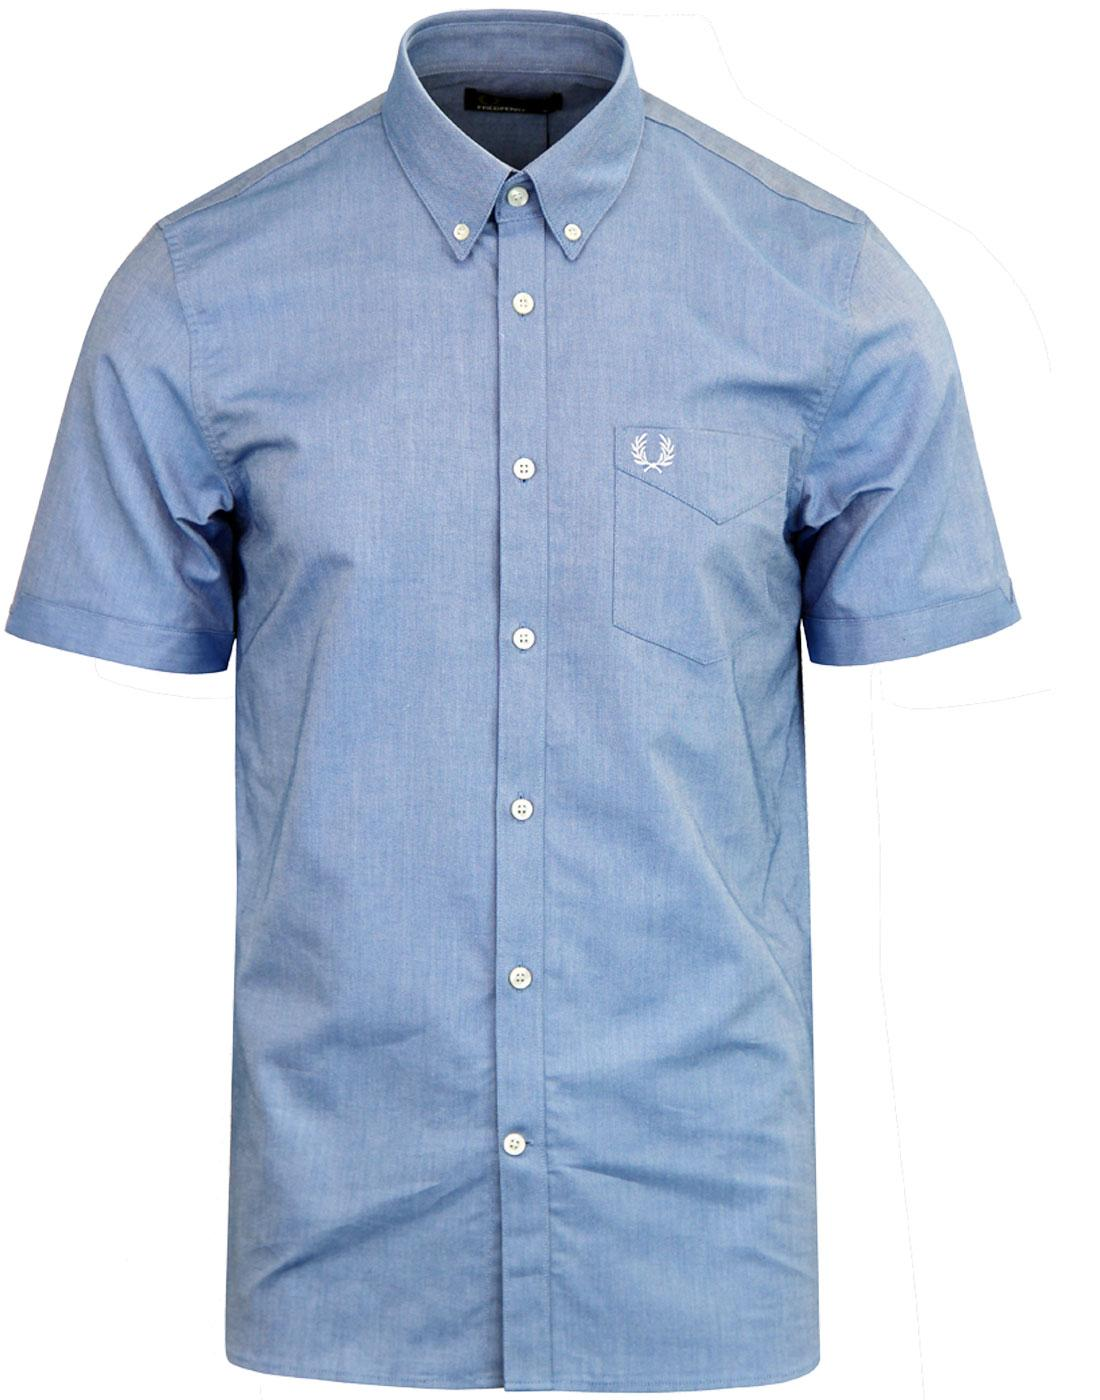 M3531 FRED PERRY Oxford Shirt Mid Blue